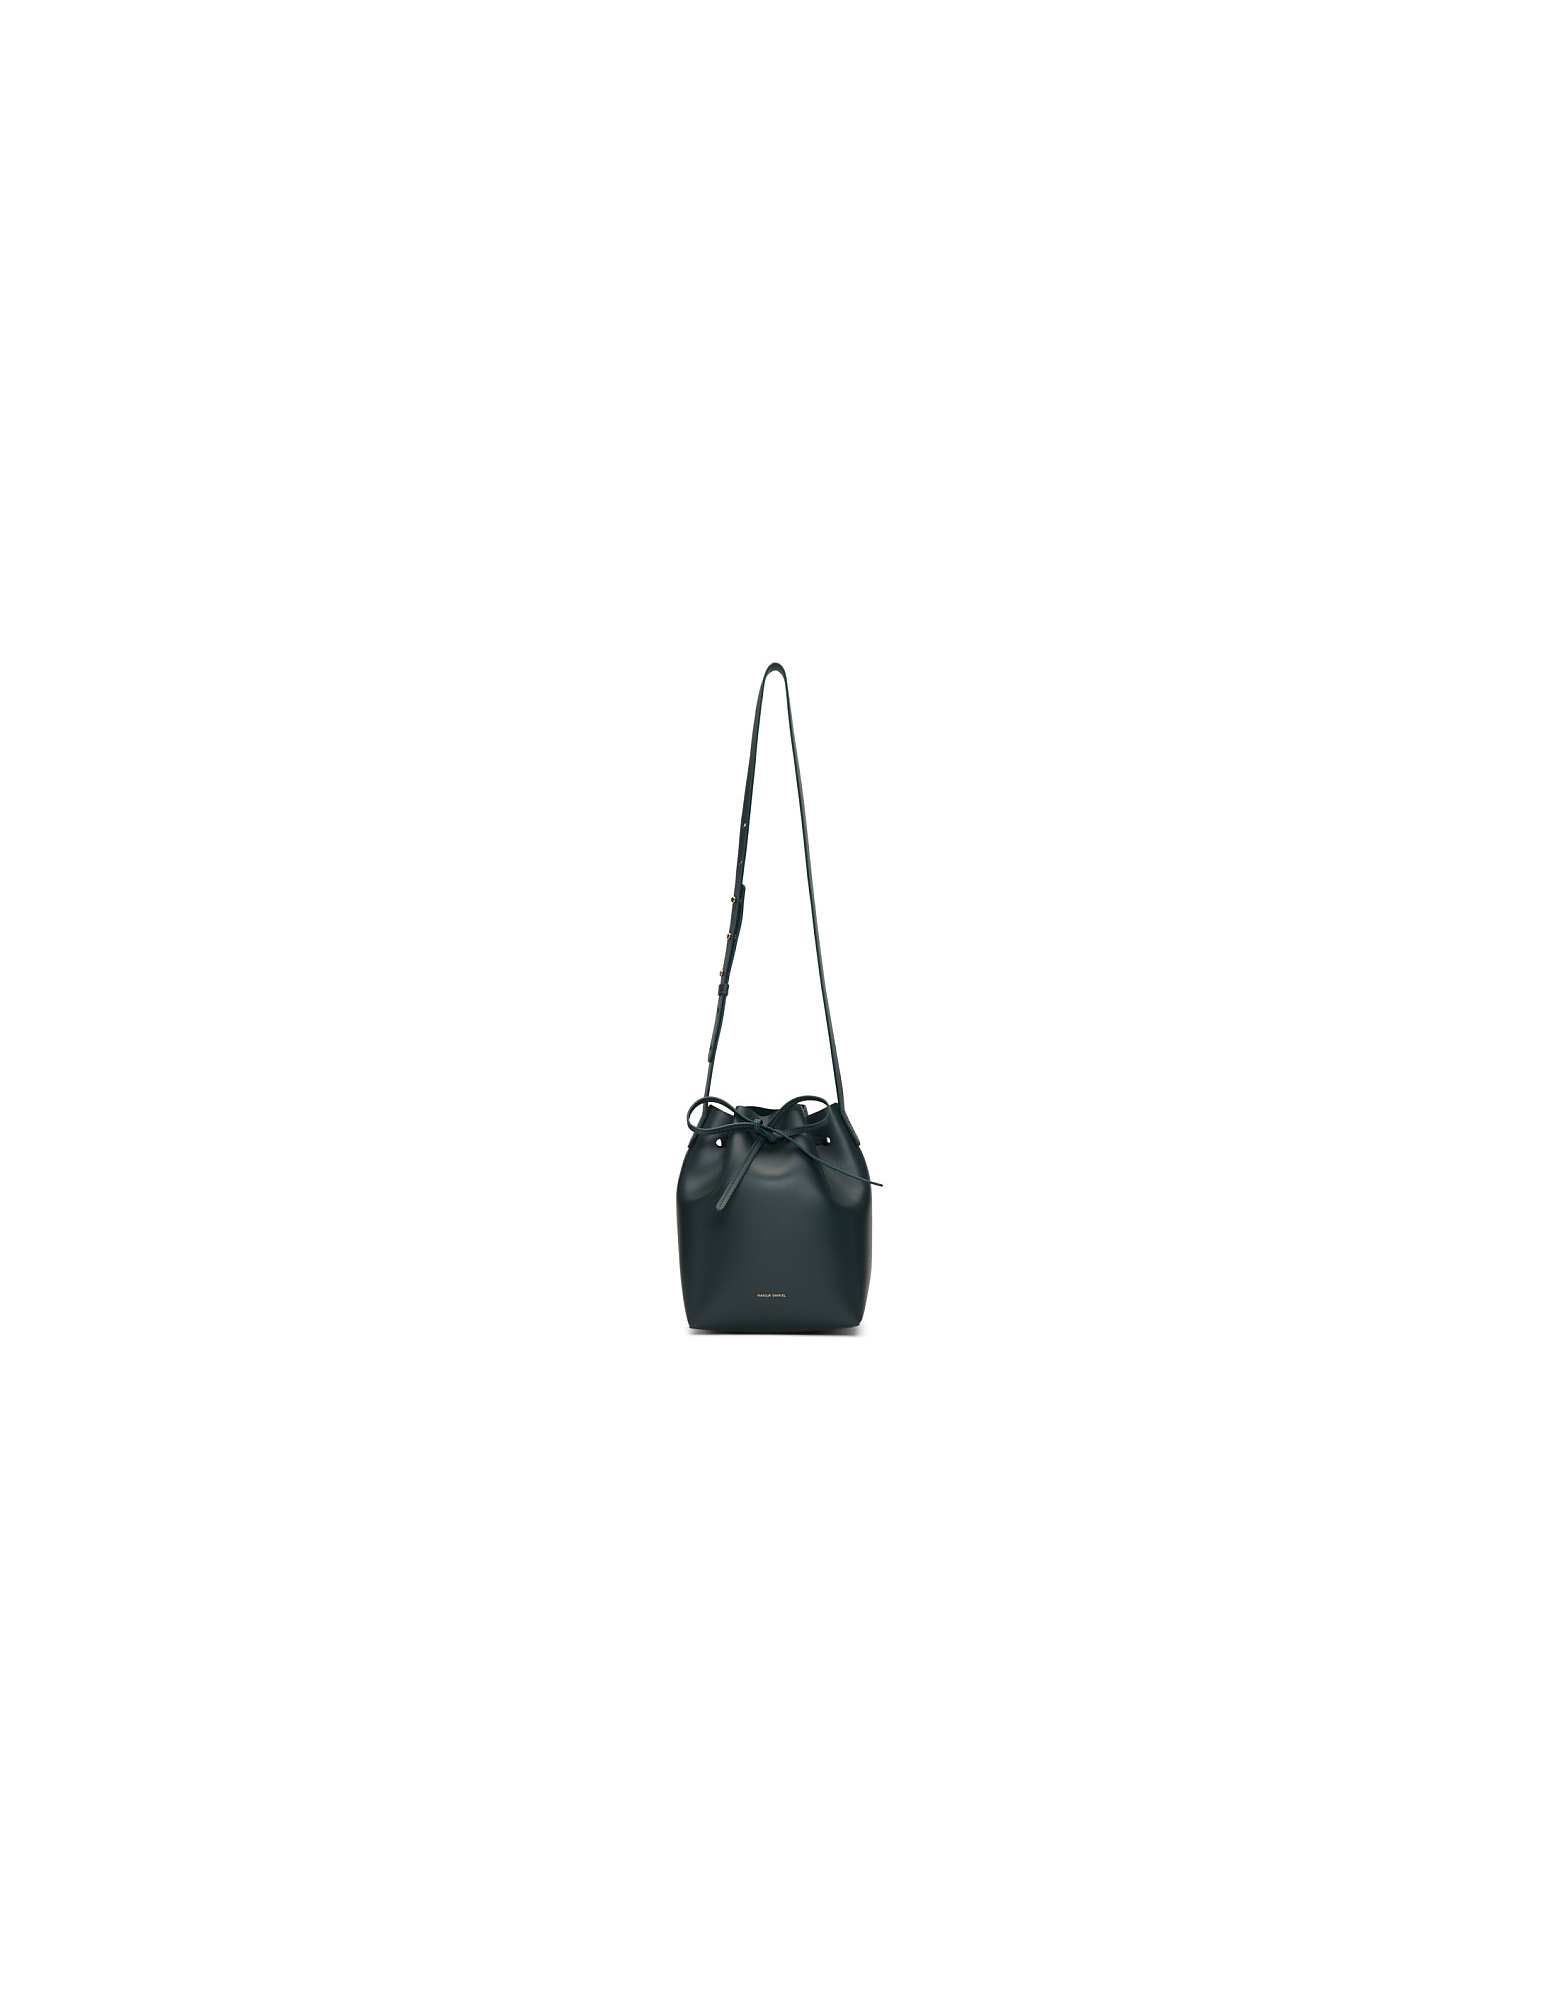 Mansur Gavriel Designer Handbags, Navy Mini Bucket Bag